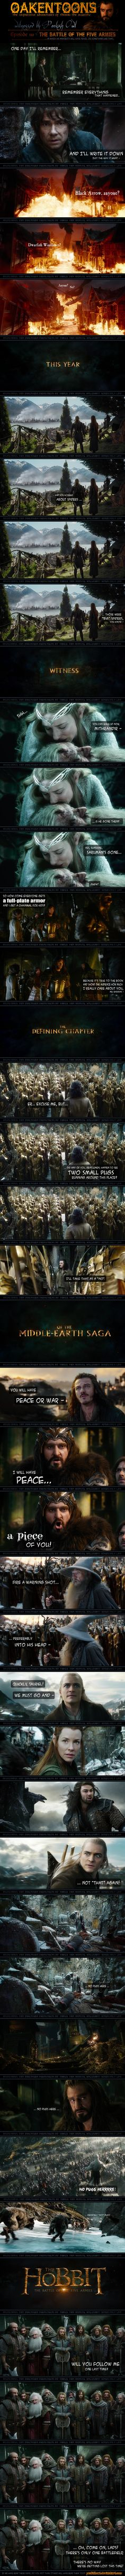 "This just got better as it went on. Haha! Gotta love the new ""Battle of the Five Armies"" trailer."